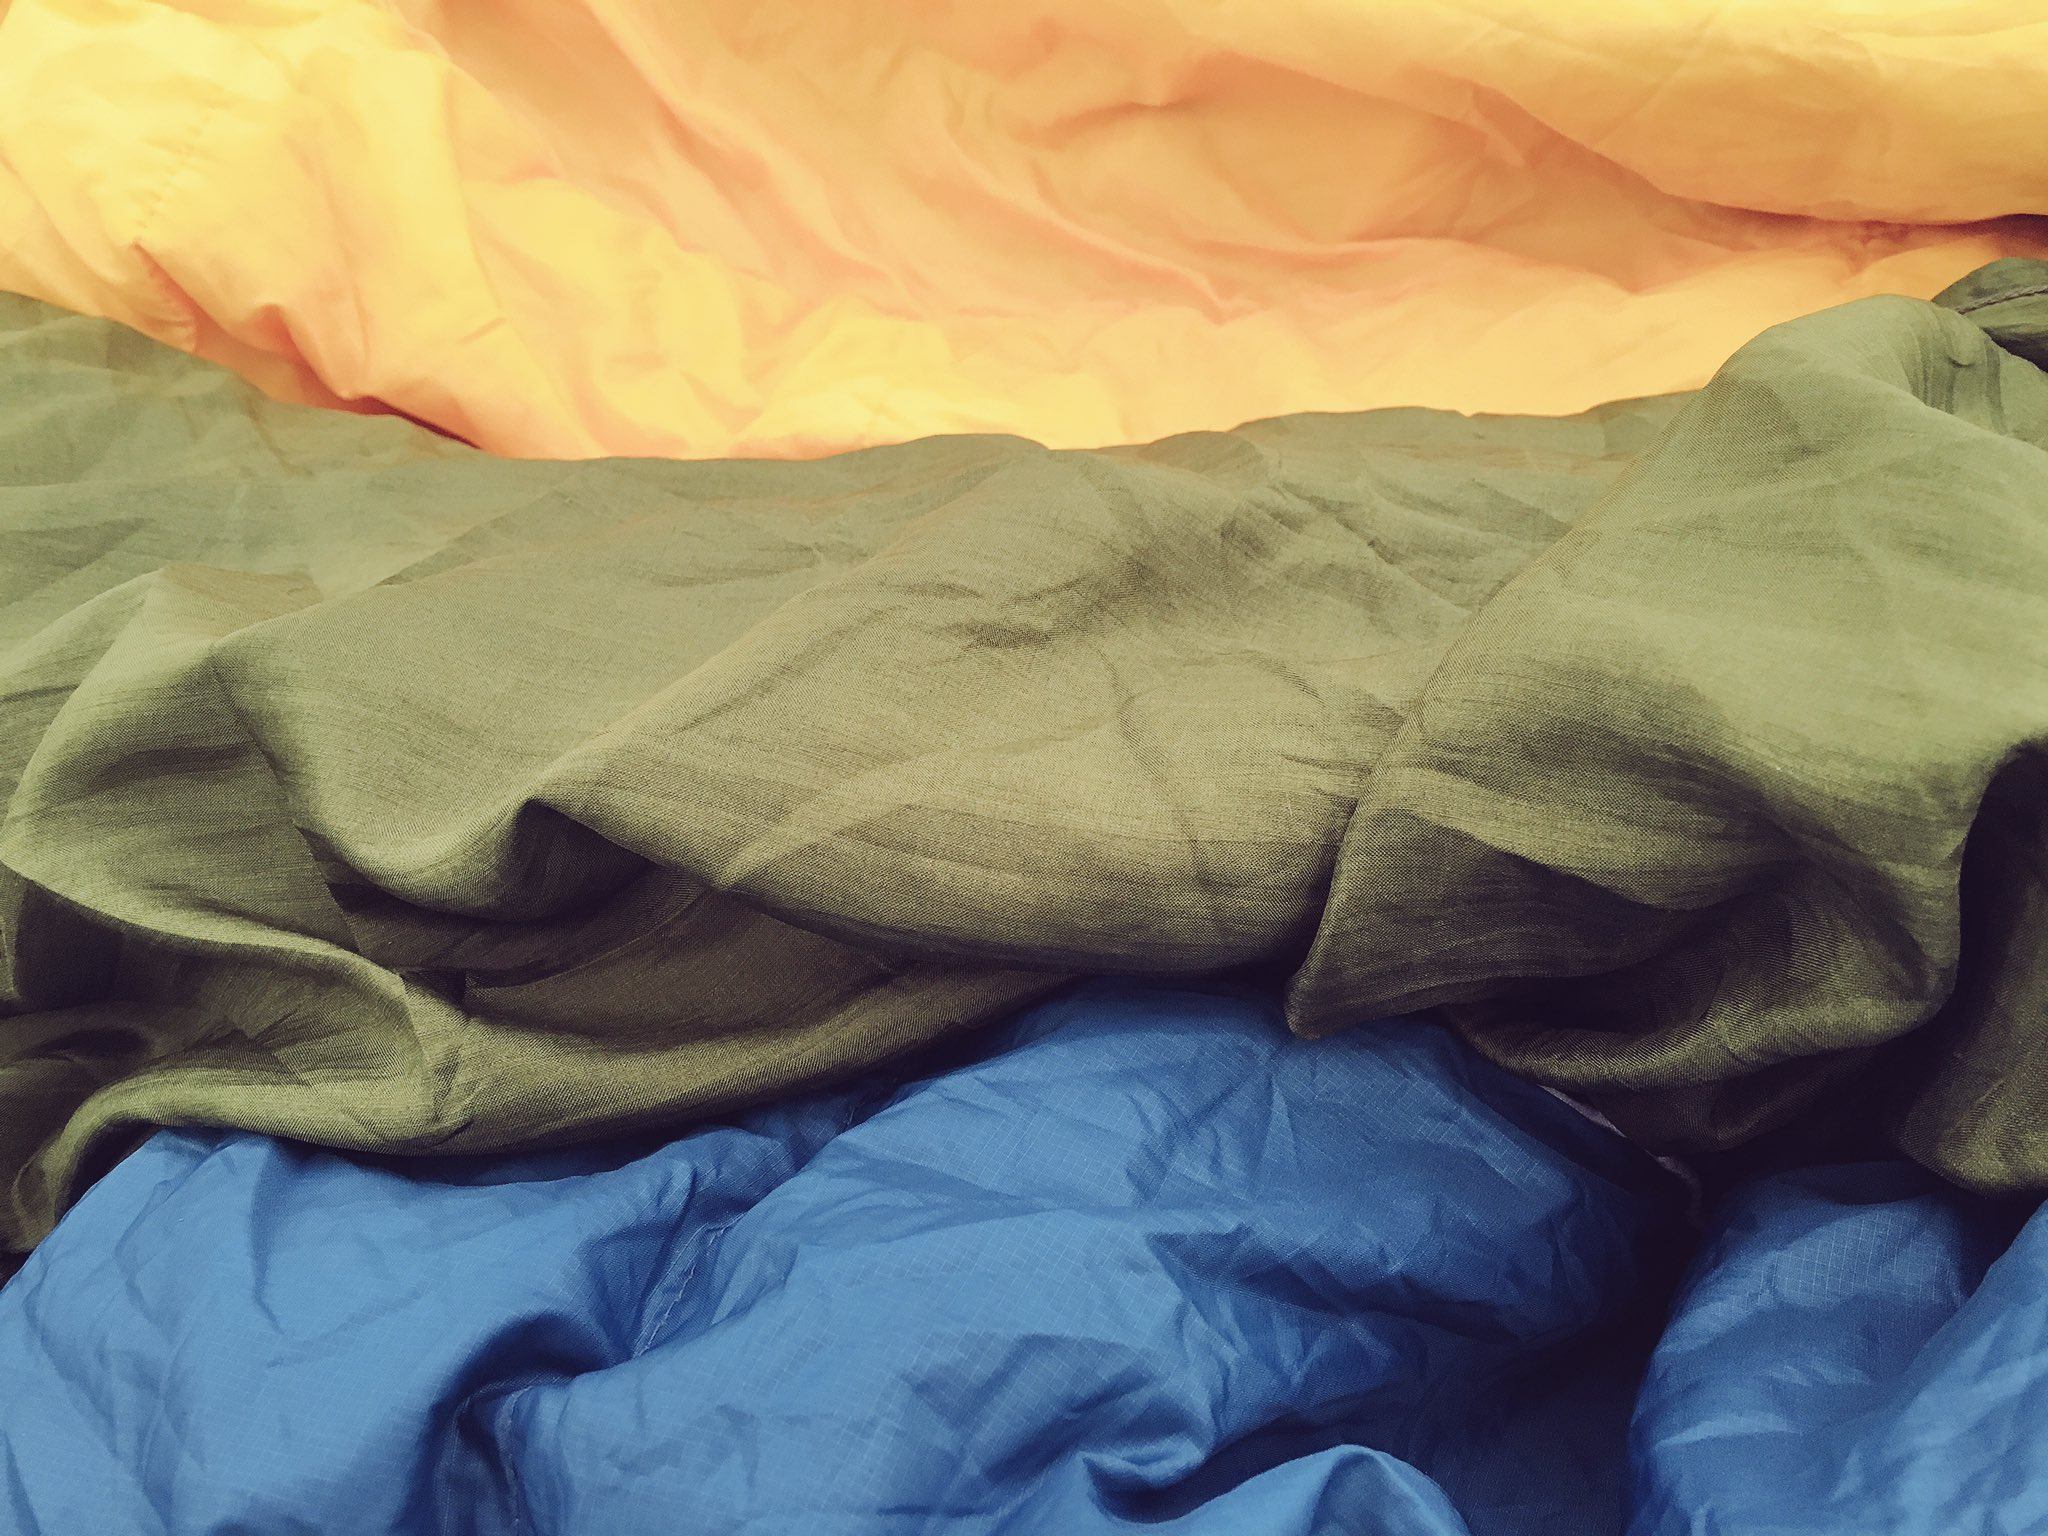 My combination of two one season sleeping bags, a silk liner and a sleep mat made for a toasty night. #emfcamp https://t.co/FzQQBidK4C